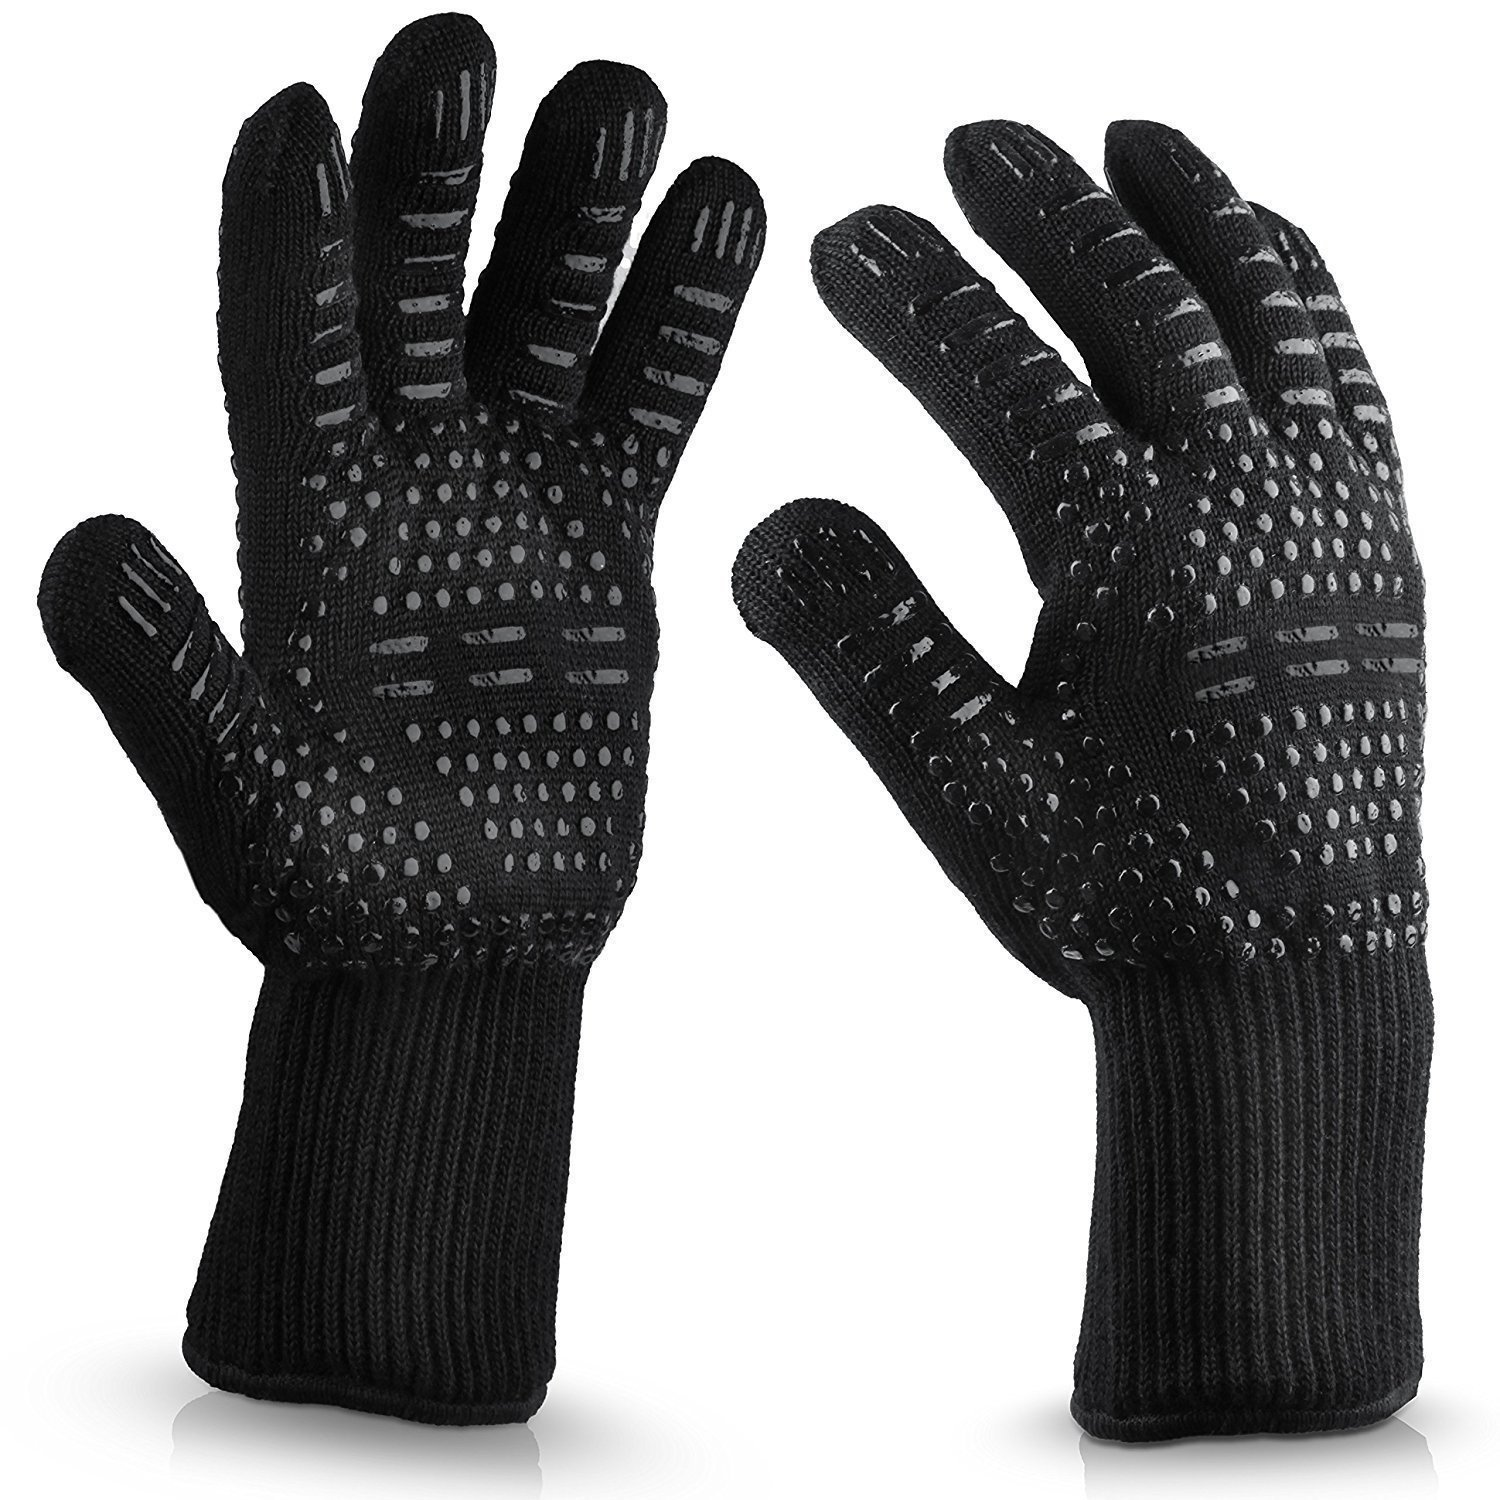 Kyerivs BBQ Cooking Gloves, Extreme Heat Resistant Gloves, Protection up to 932°F, Flexible Safe Oven Mitts for Grilling, Cooking, Baking(Black) Baking(Black)